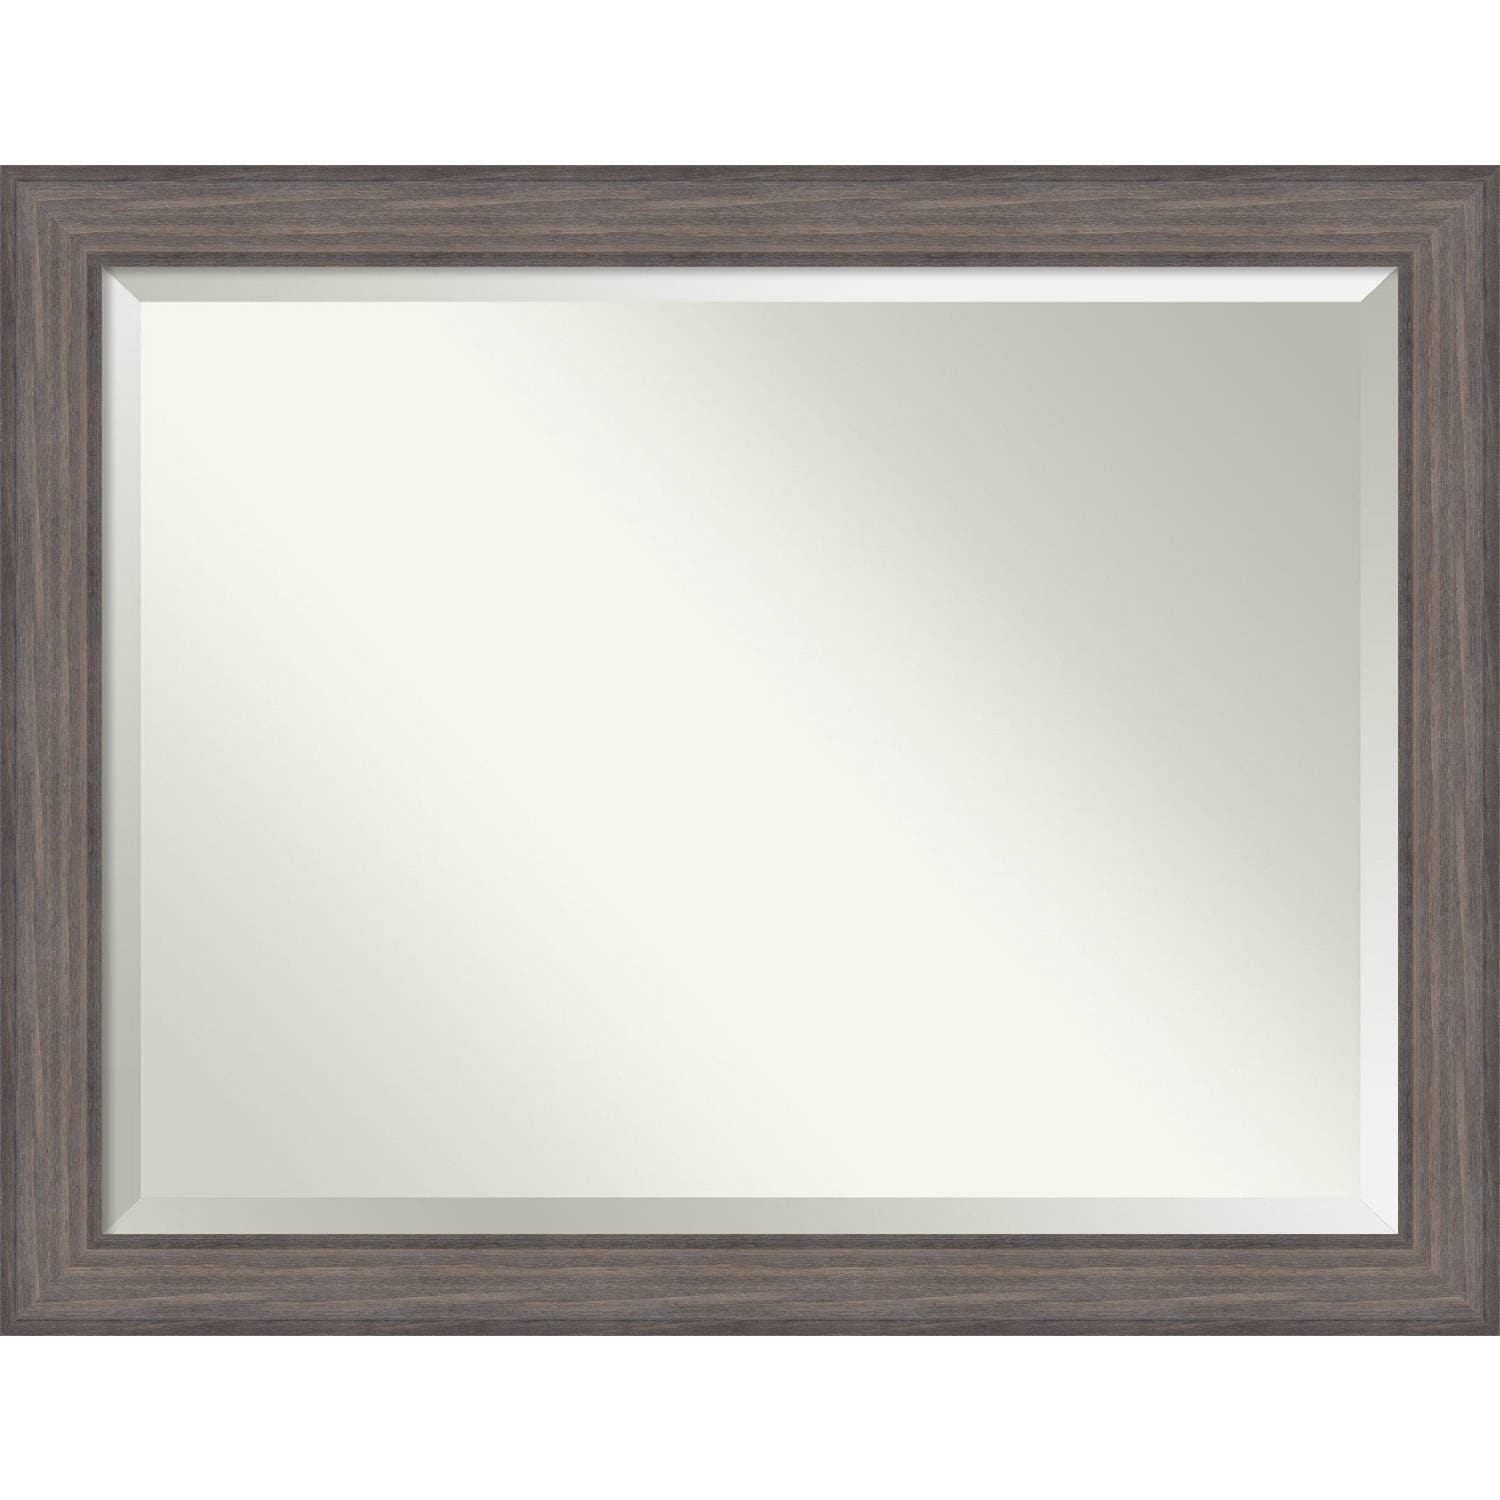 Shop Bathroom Mirror Oversize Large Country Barnwood 46 X 36 Inch